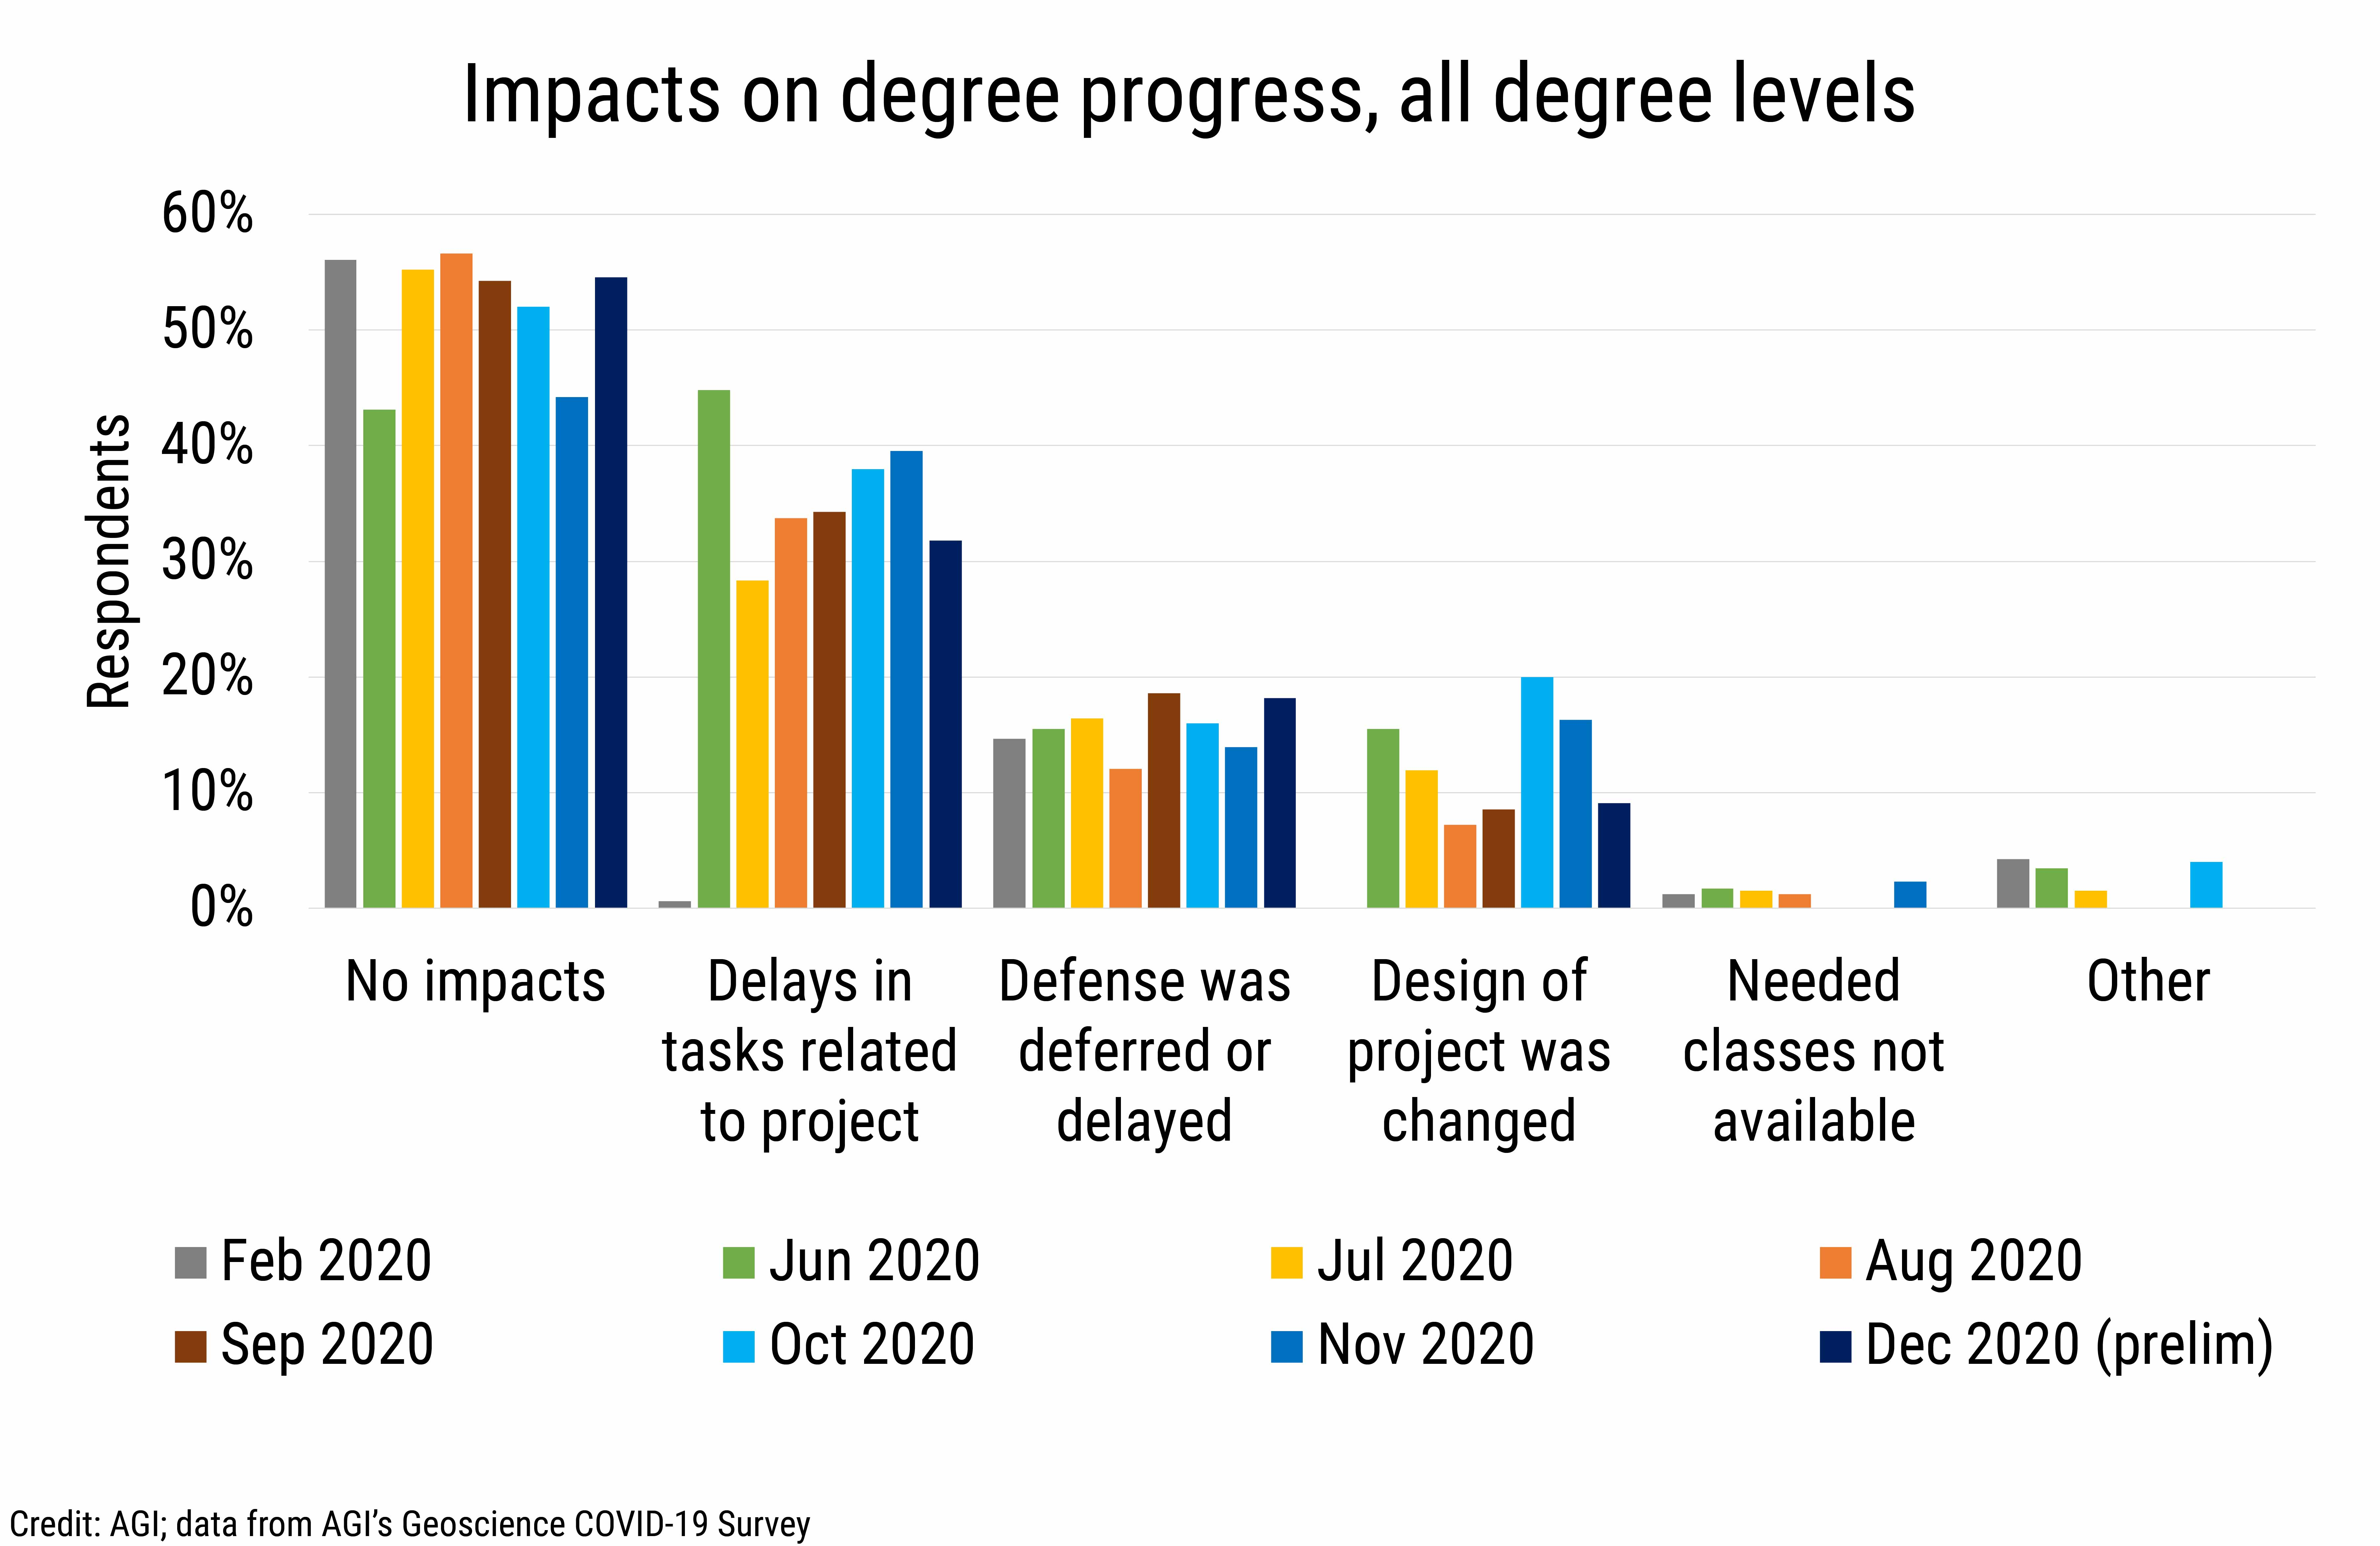 DB_2020-032 chart 02: Impacts on degree progress, all degree levels (Credit: AGI; data from AGI's Geoscience COVID-19 Survey)